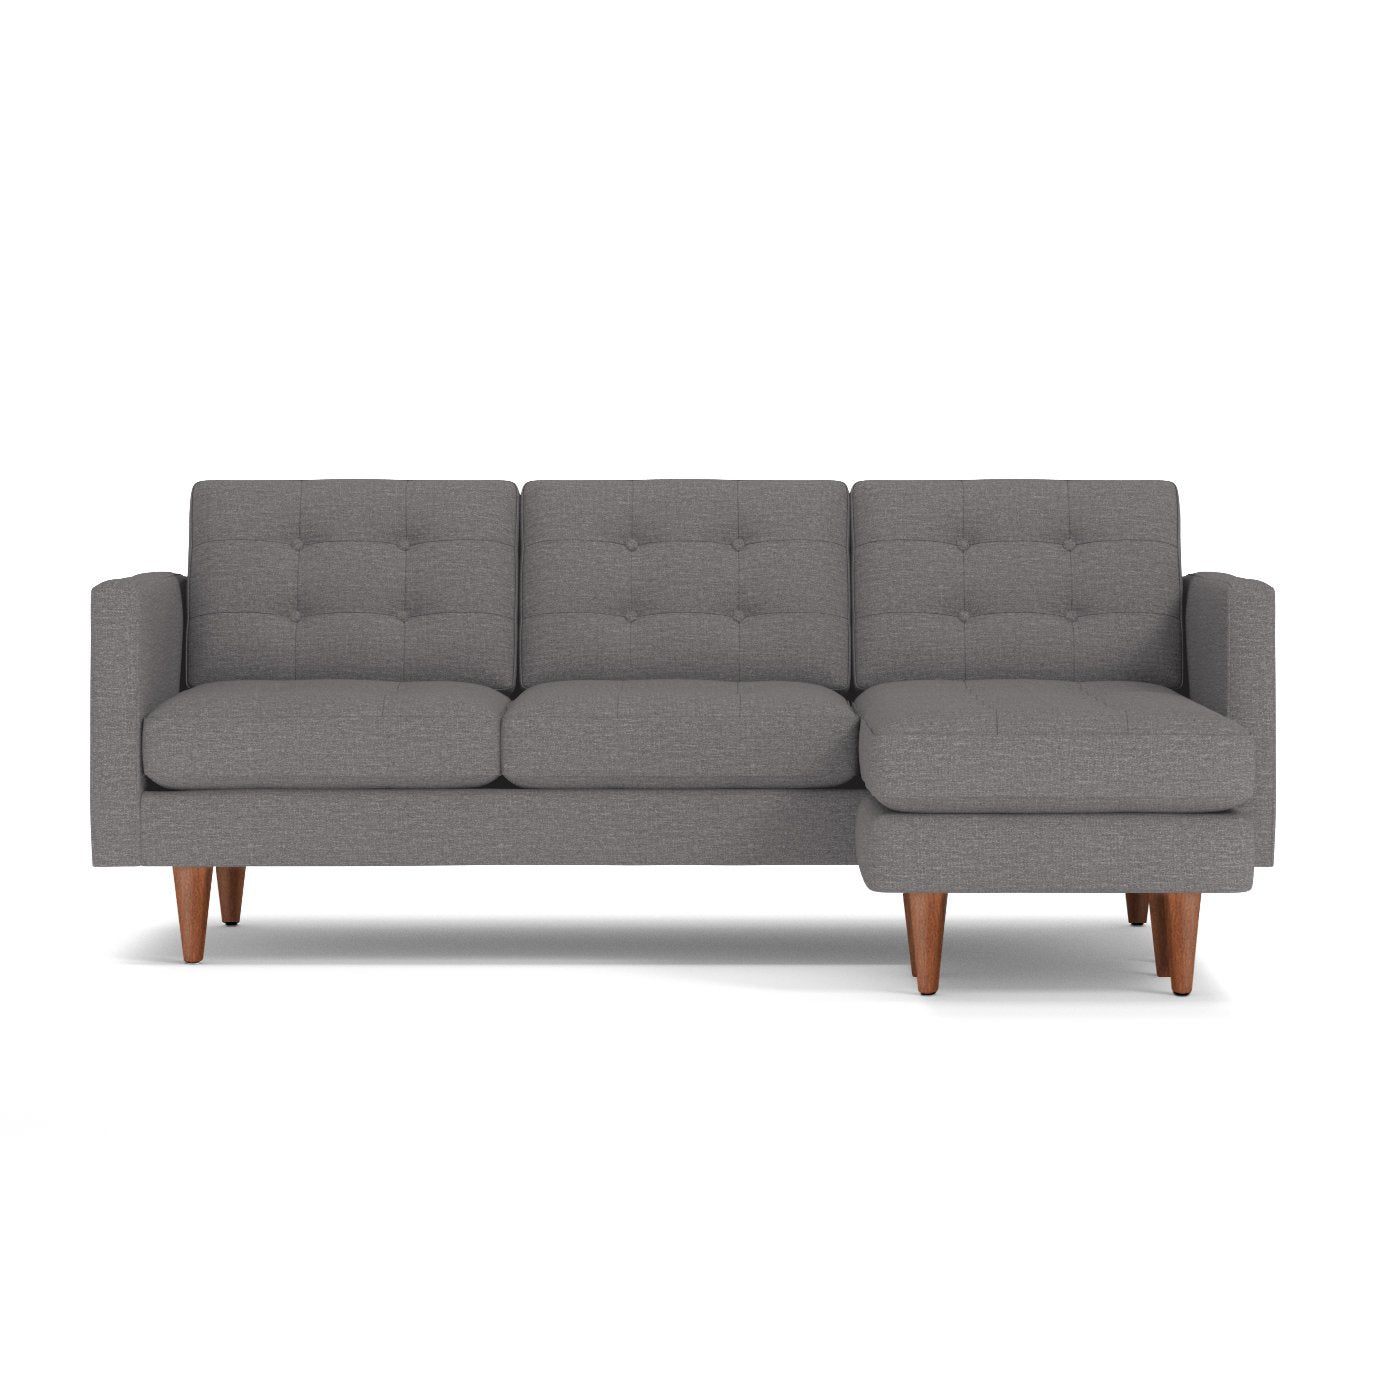 Merveilleux Lexington Reversible Chaise Sofa